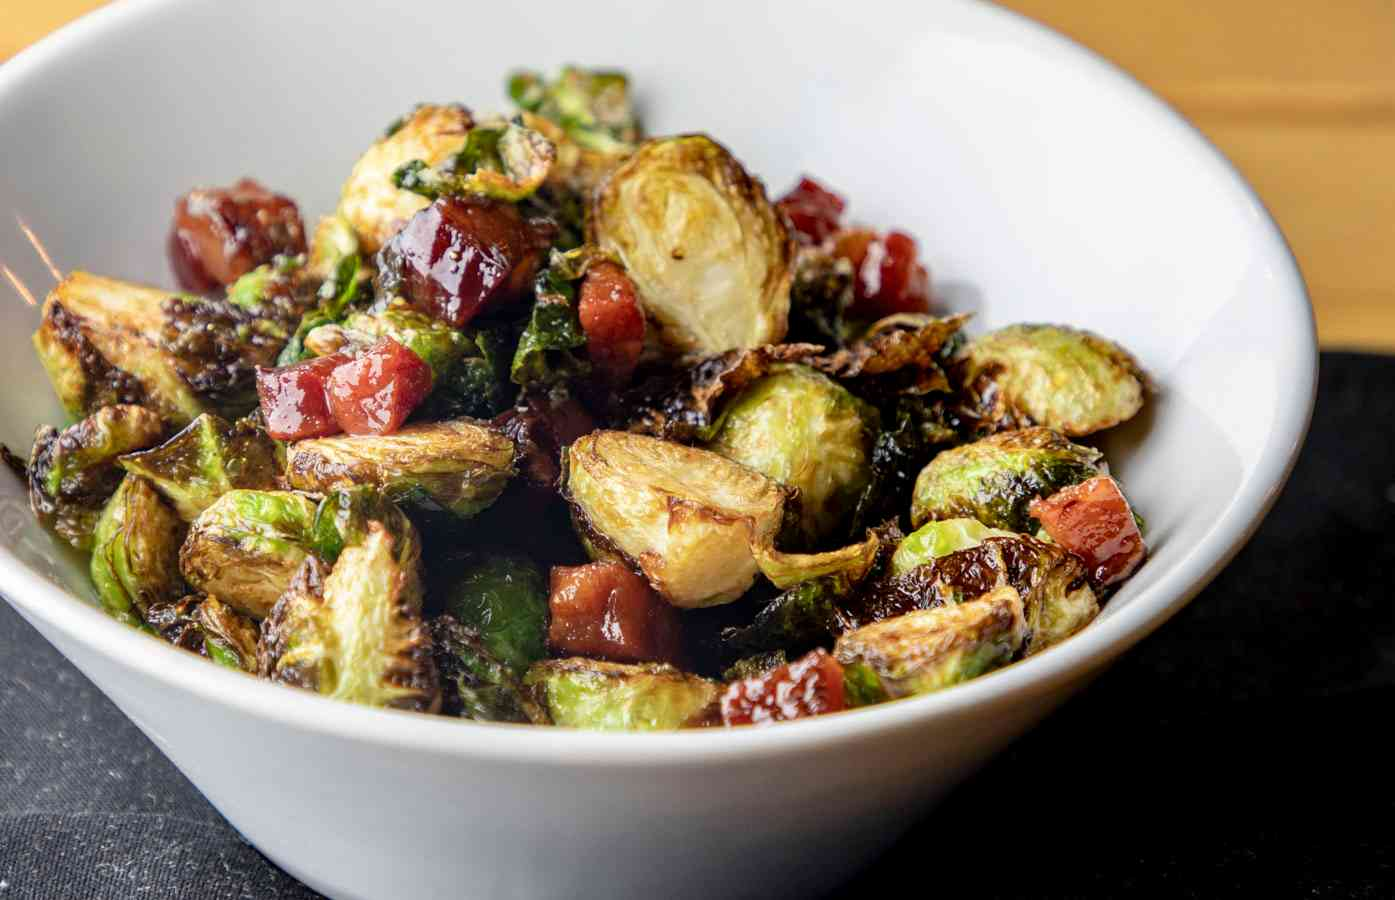 SPICY MAPLE BRUSSELS SPROUTS & BACON